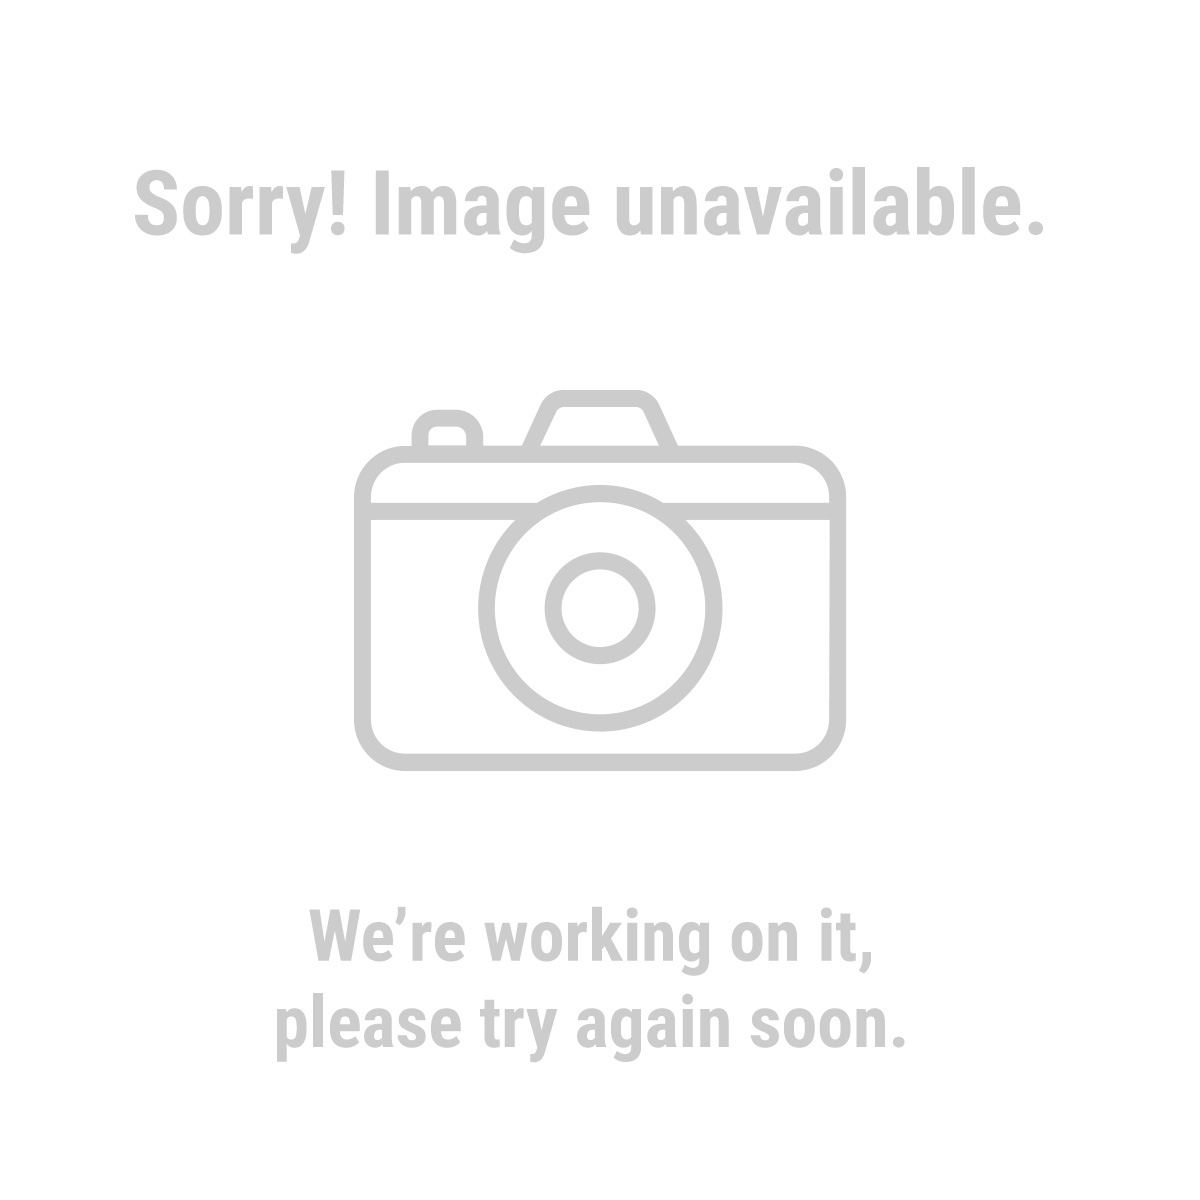 Cen-Tech® 61838 High Resolution Digital Inspection Camera with Recorder